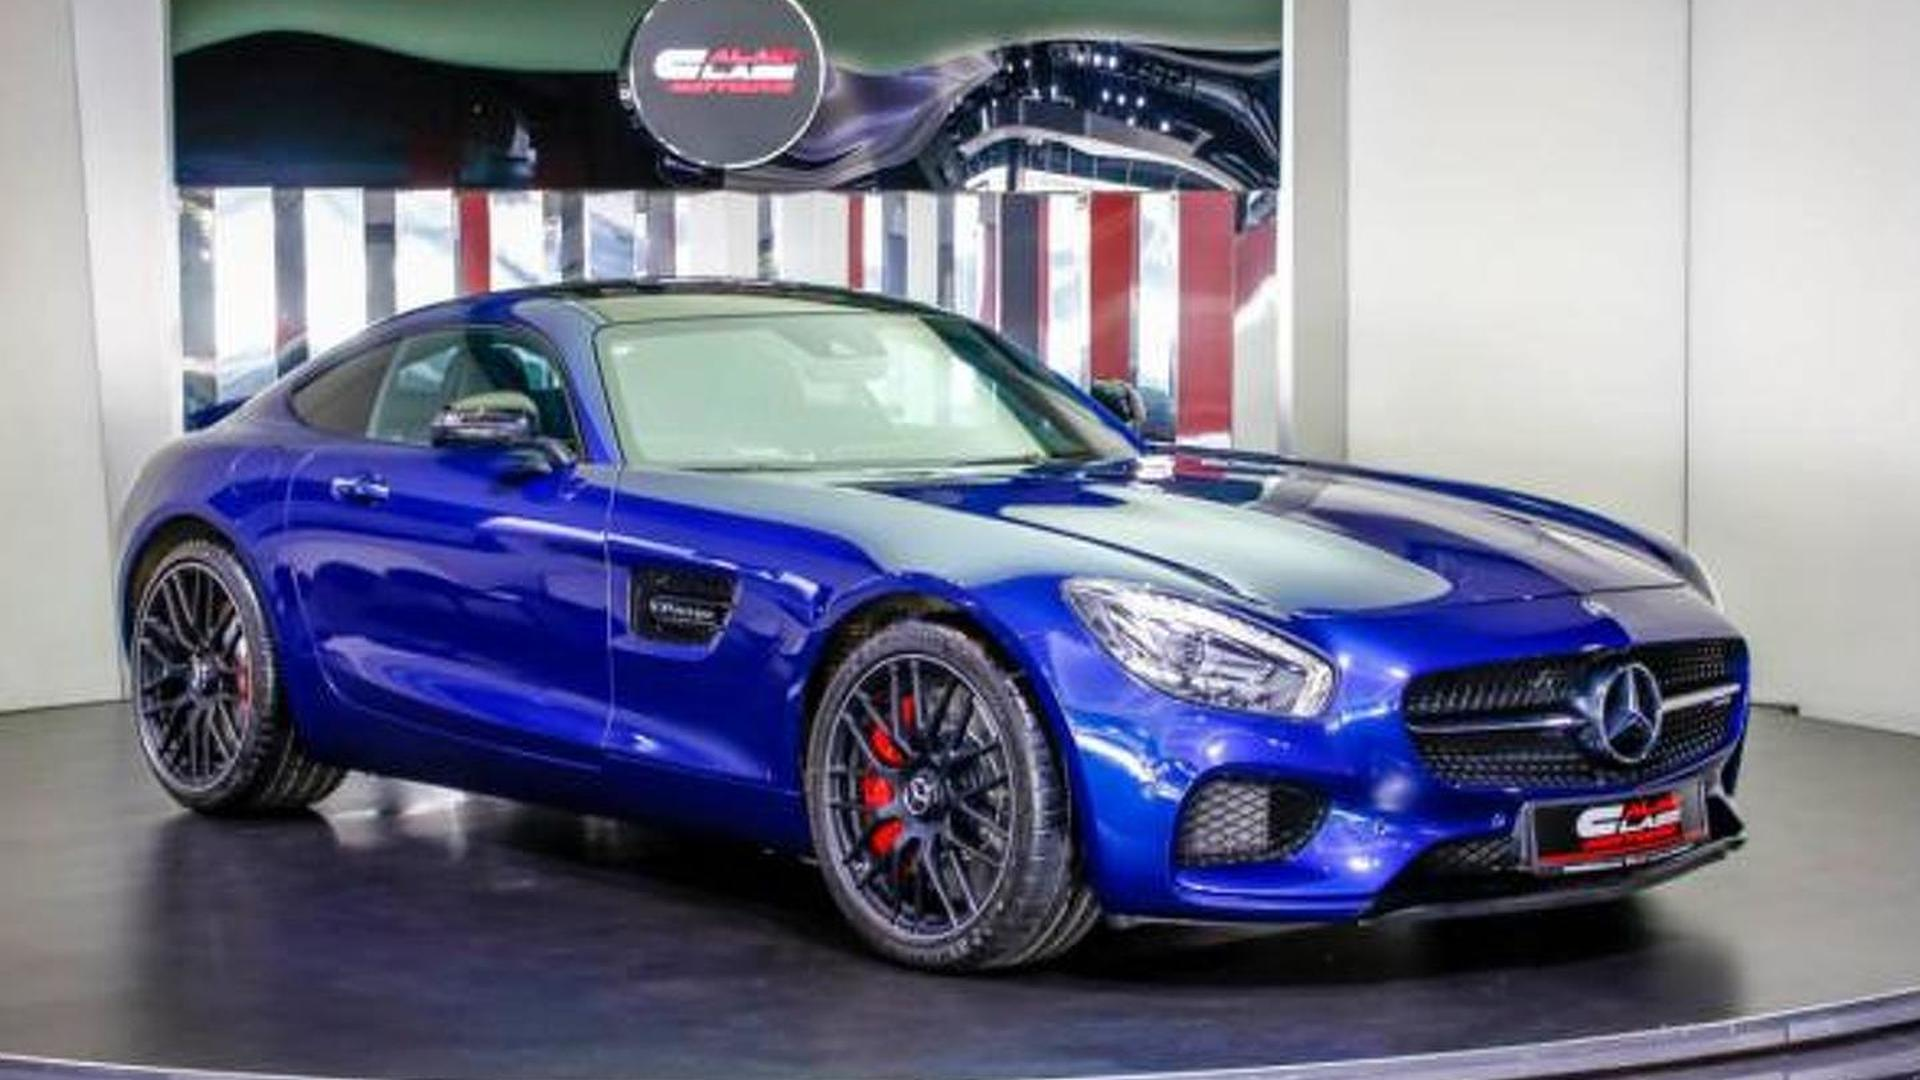 Dubai dealership shows off blue Mercedes-AMG GT S (35 pics)